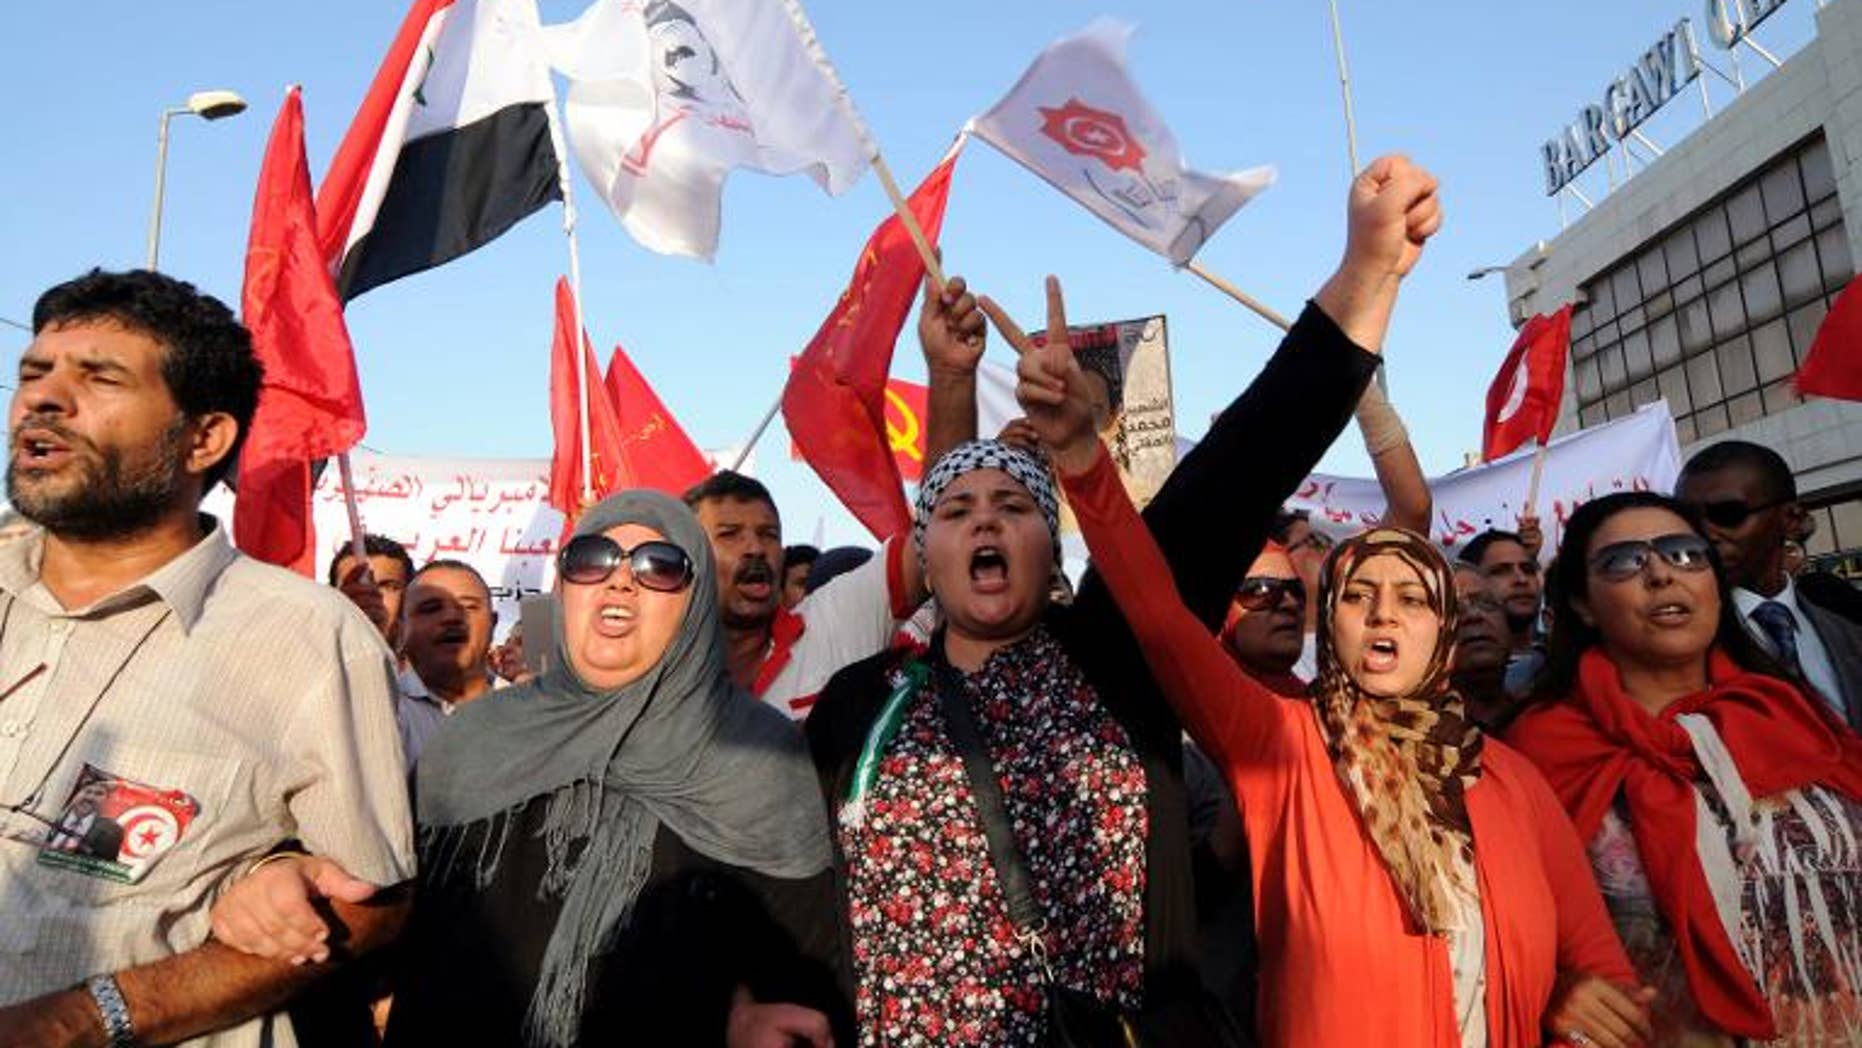 Tunisians march outside the National Assembly in Tunis on September 7, 2013.